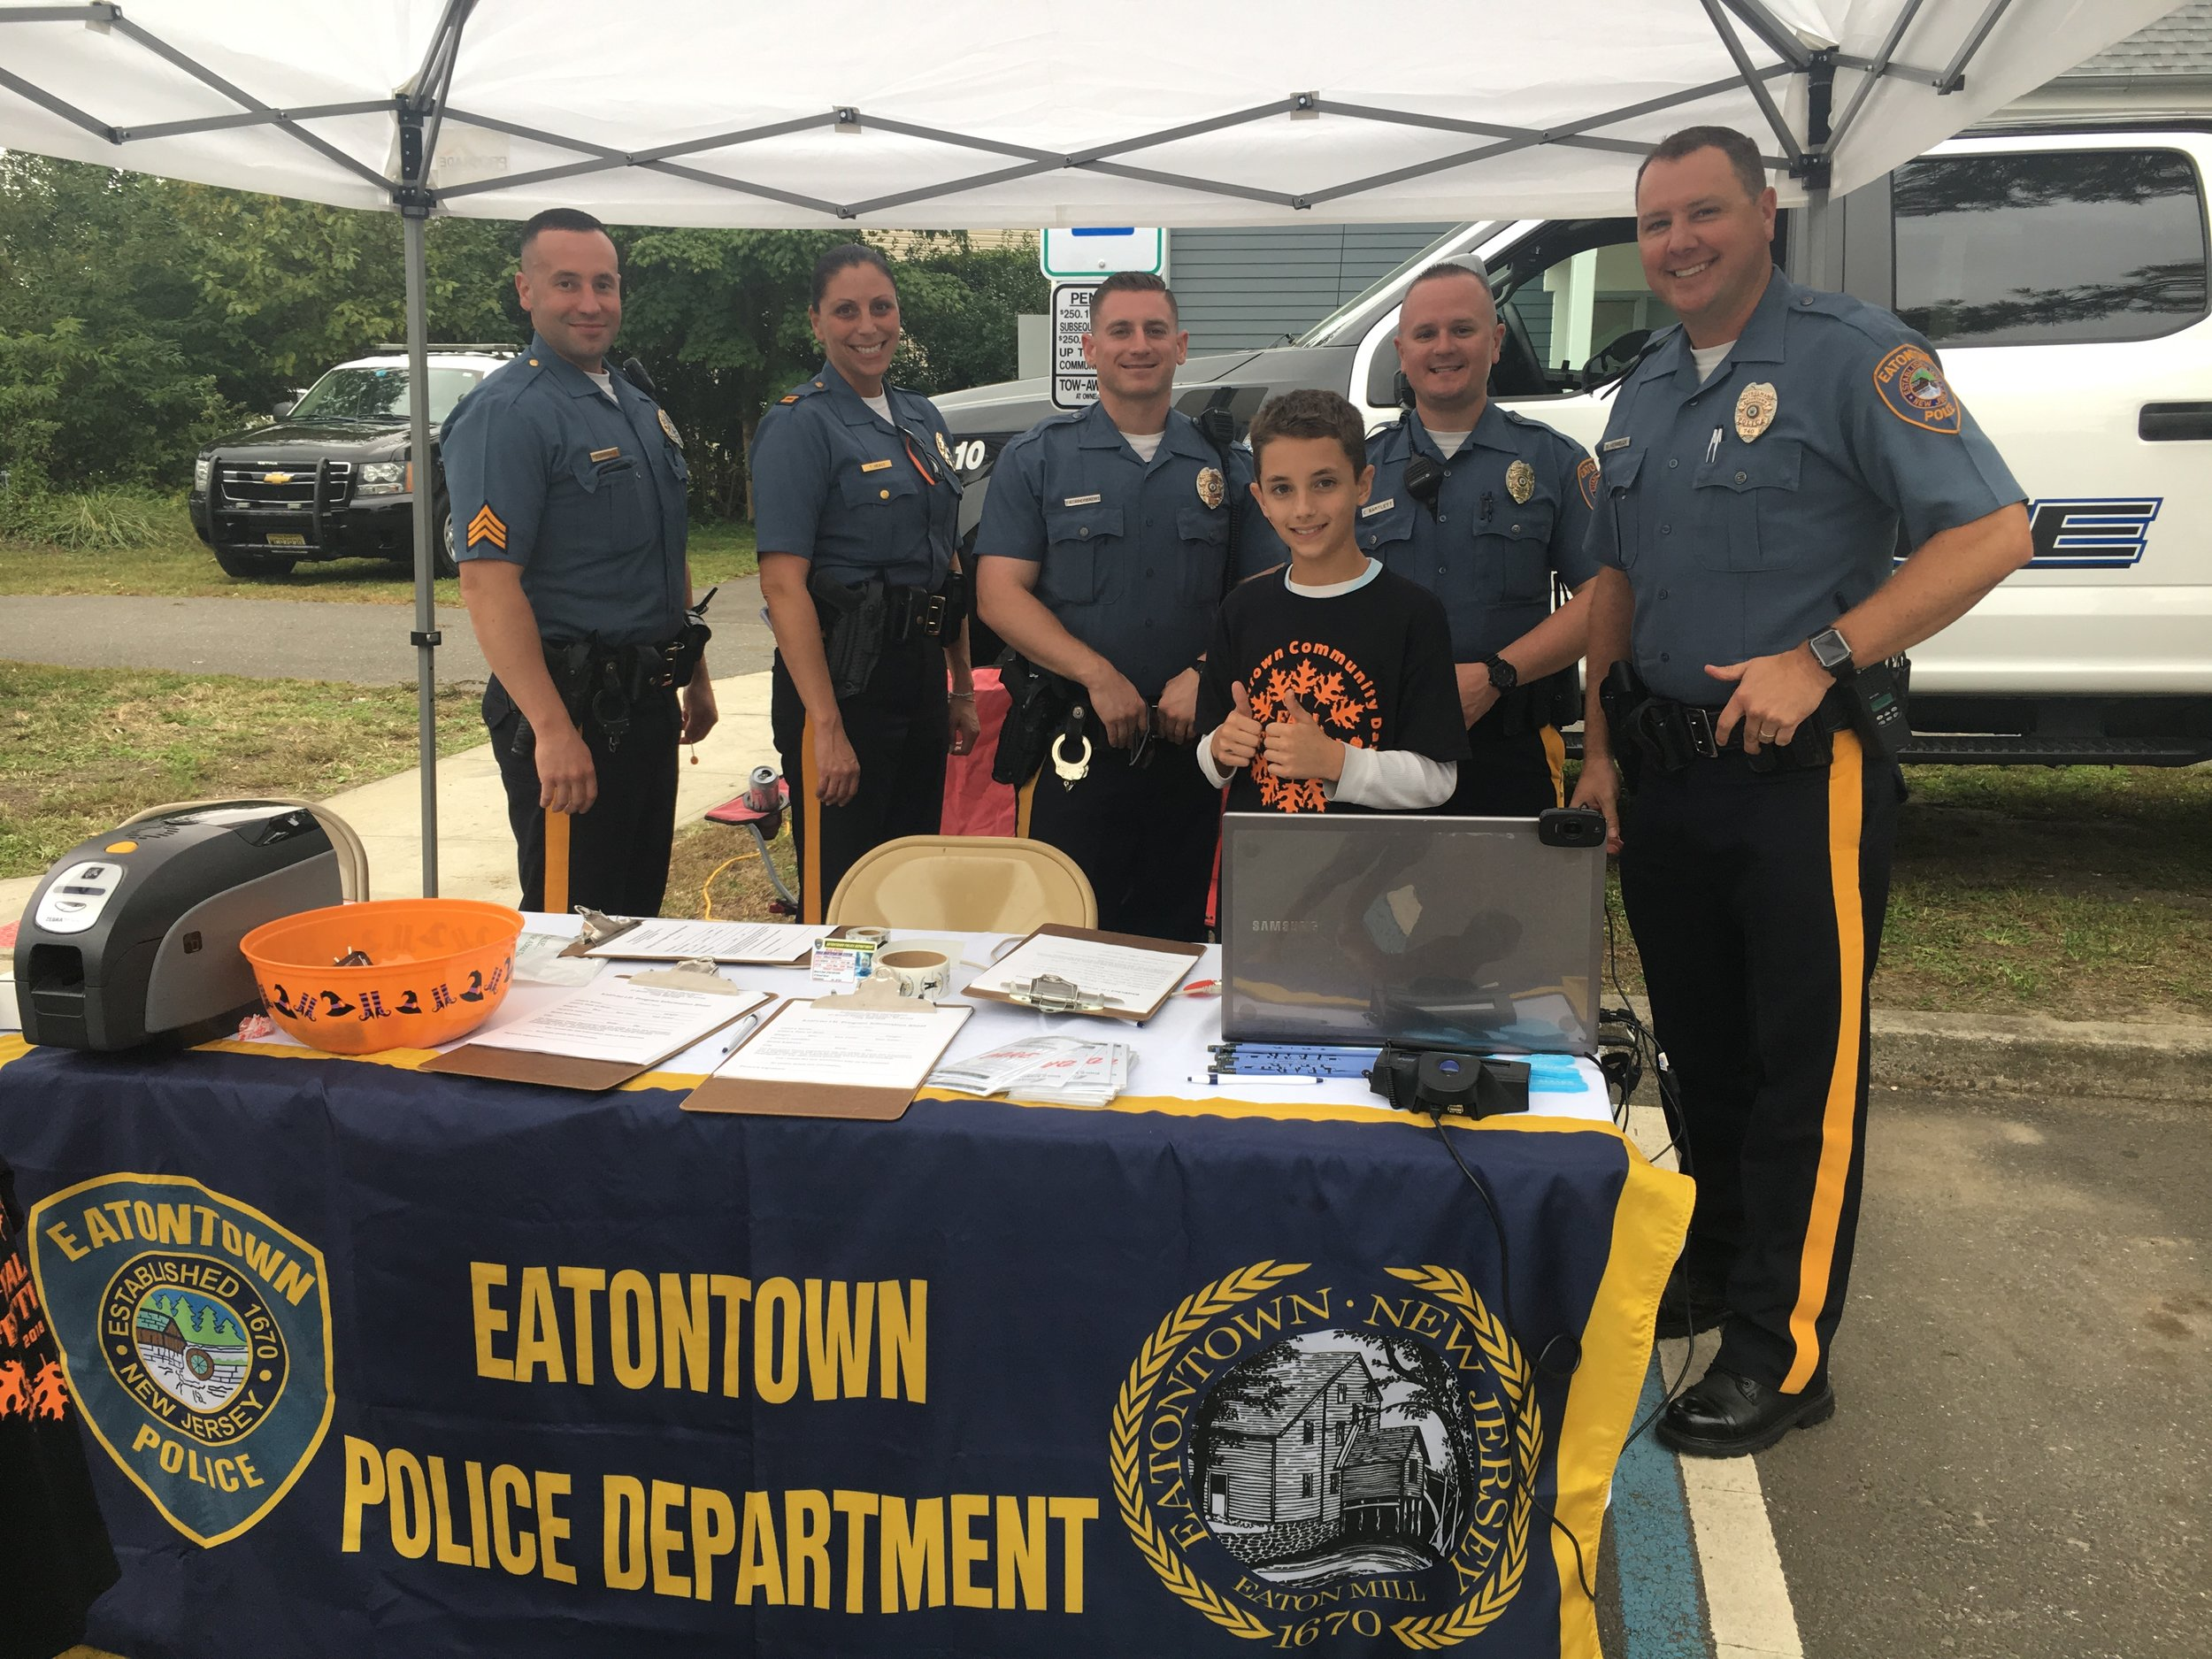 Max with the Eatontown NJ Police Department